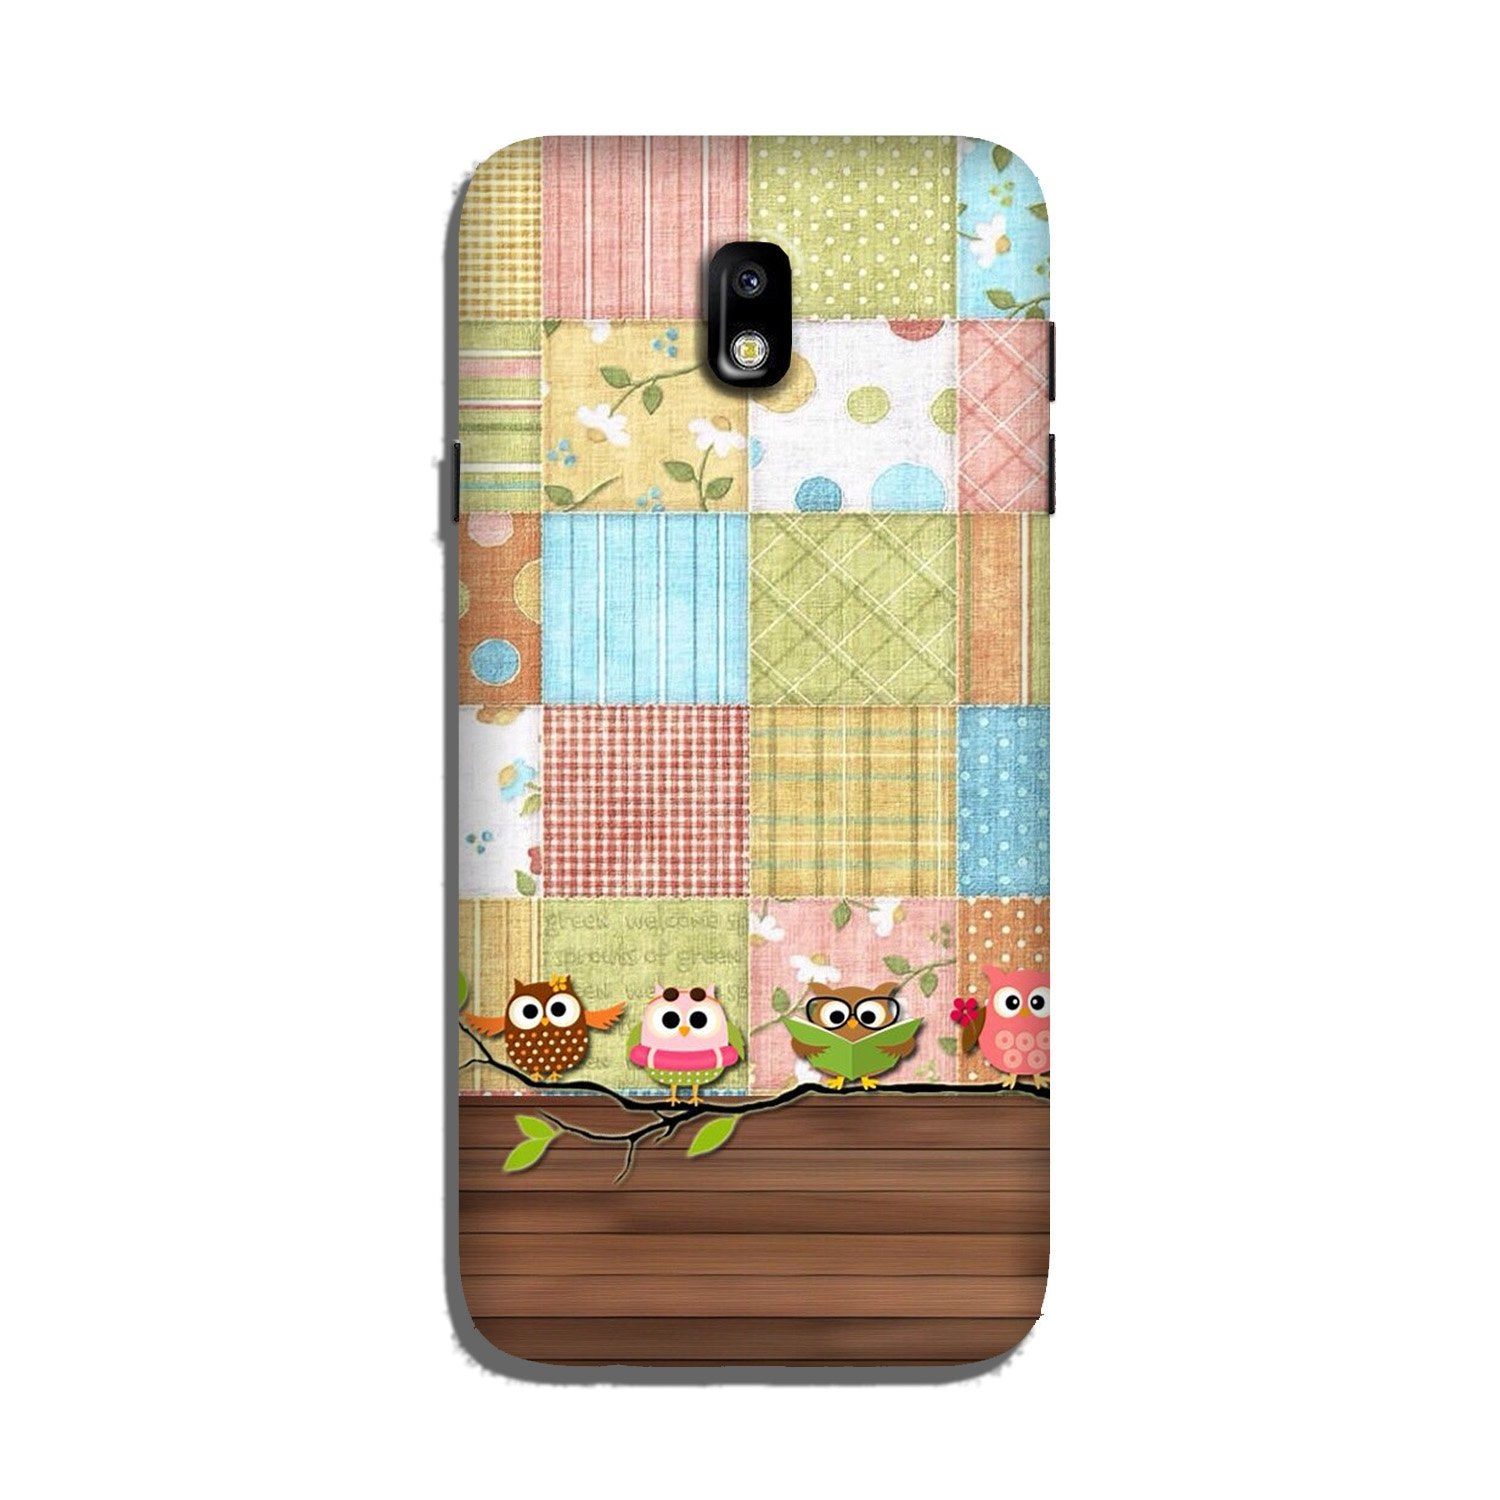 Owls Case for Galaxy J7 Pro (Design - 202)